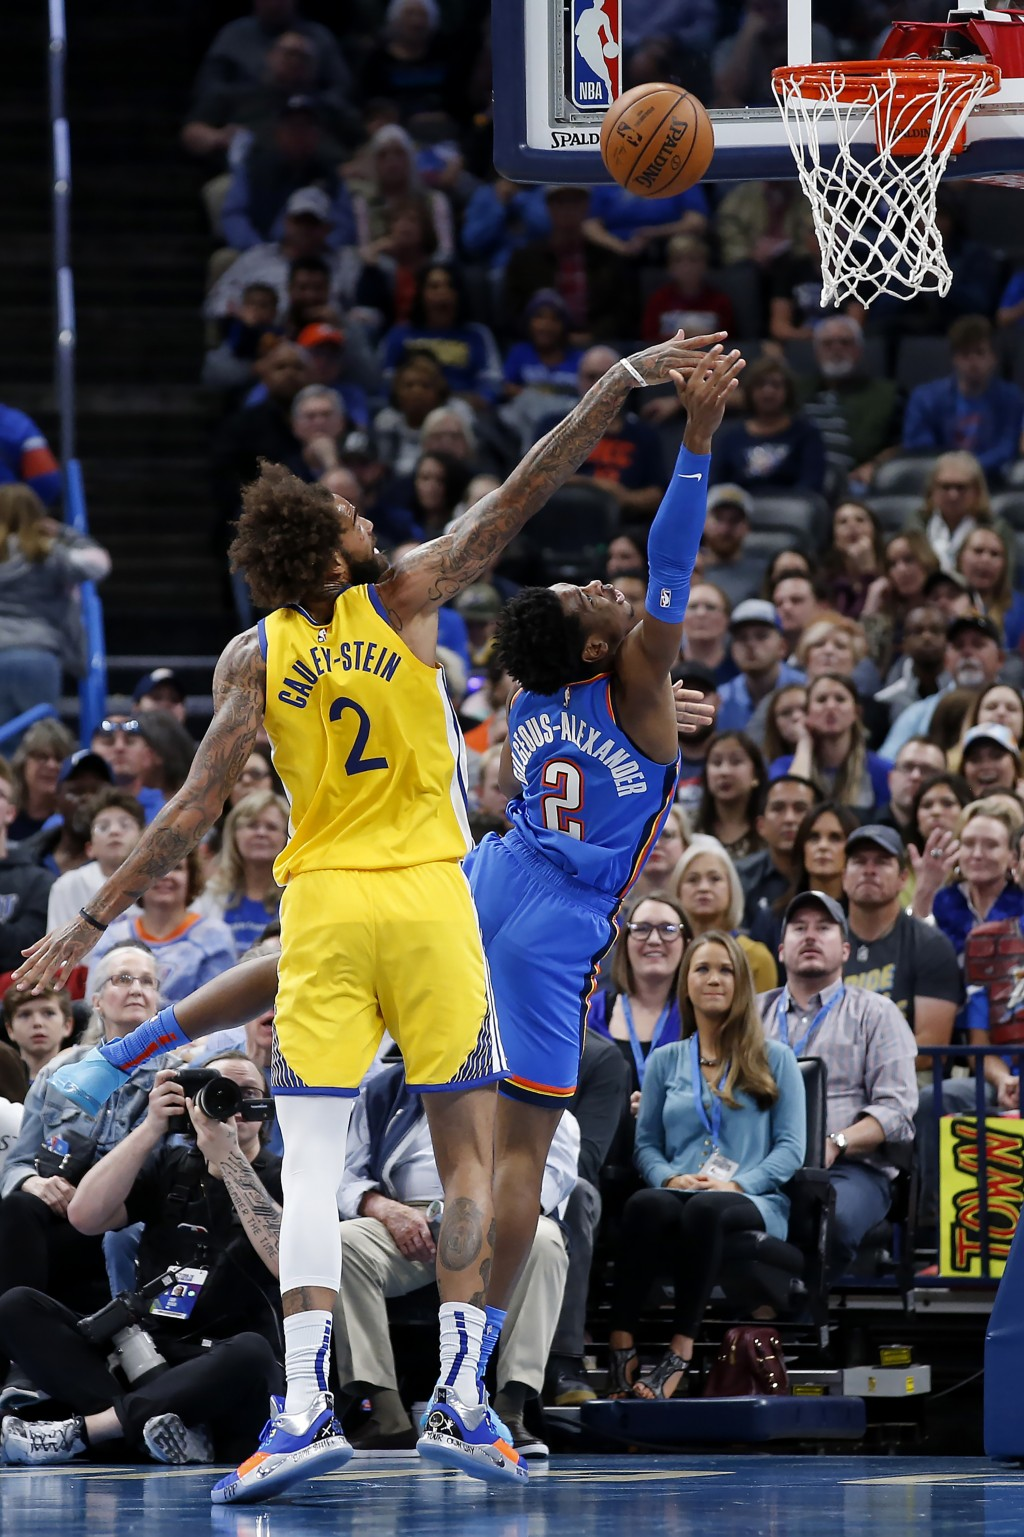 Oklahoma City Thunder's Shai Gilgeous-Alexander shoots against Golden State Warriors' Willie Cauley-Stein (2) during the first half of an NBA basketba...